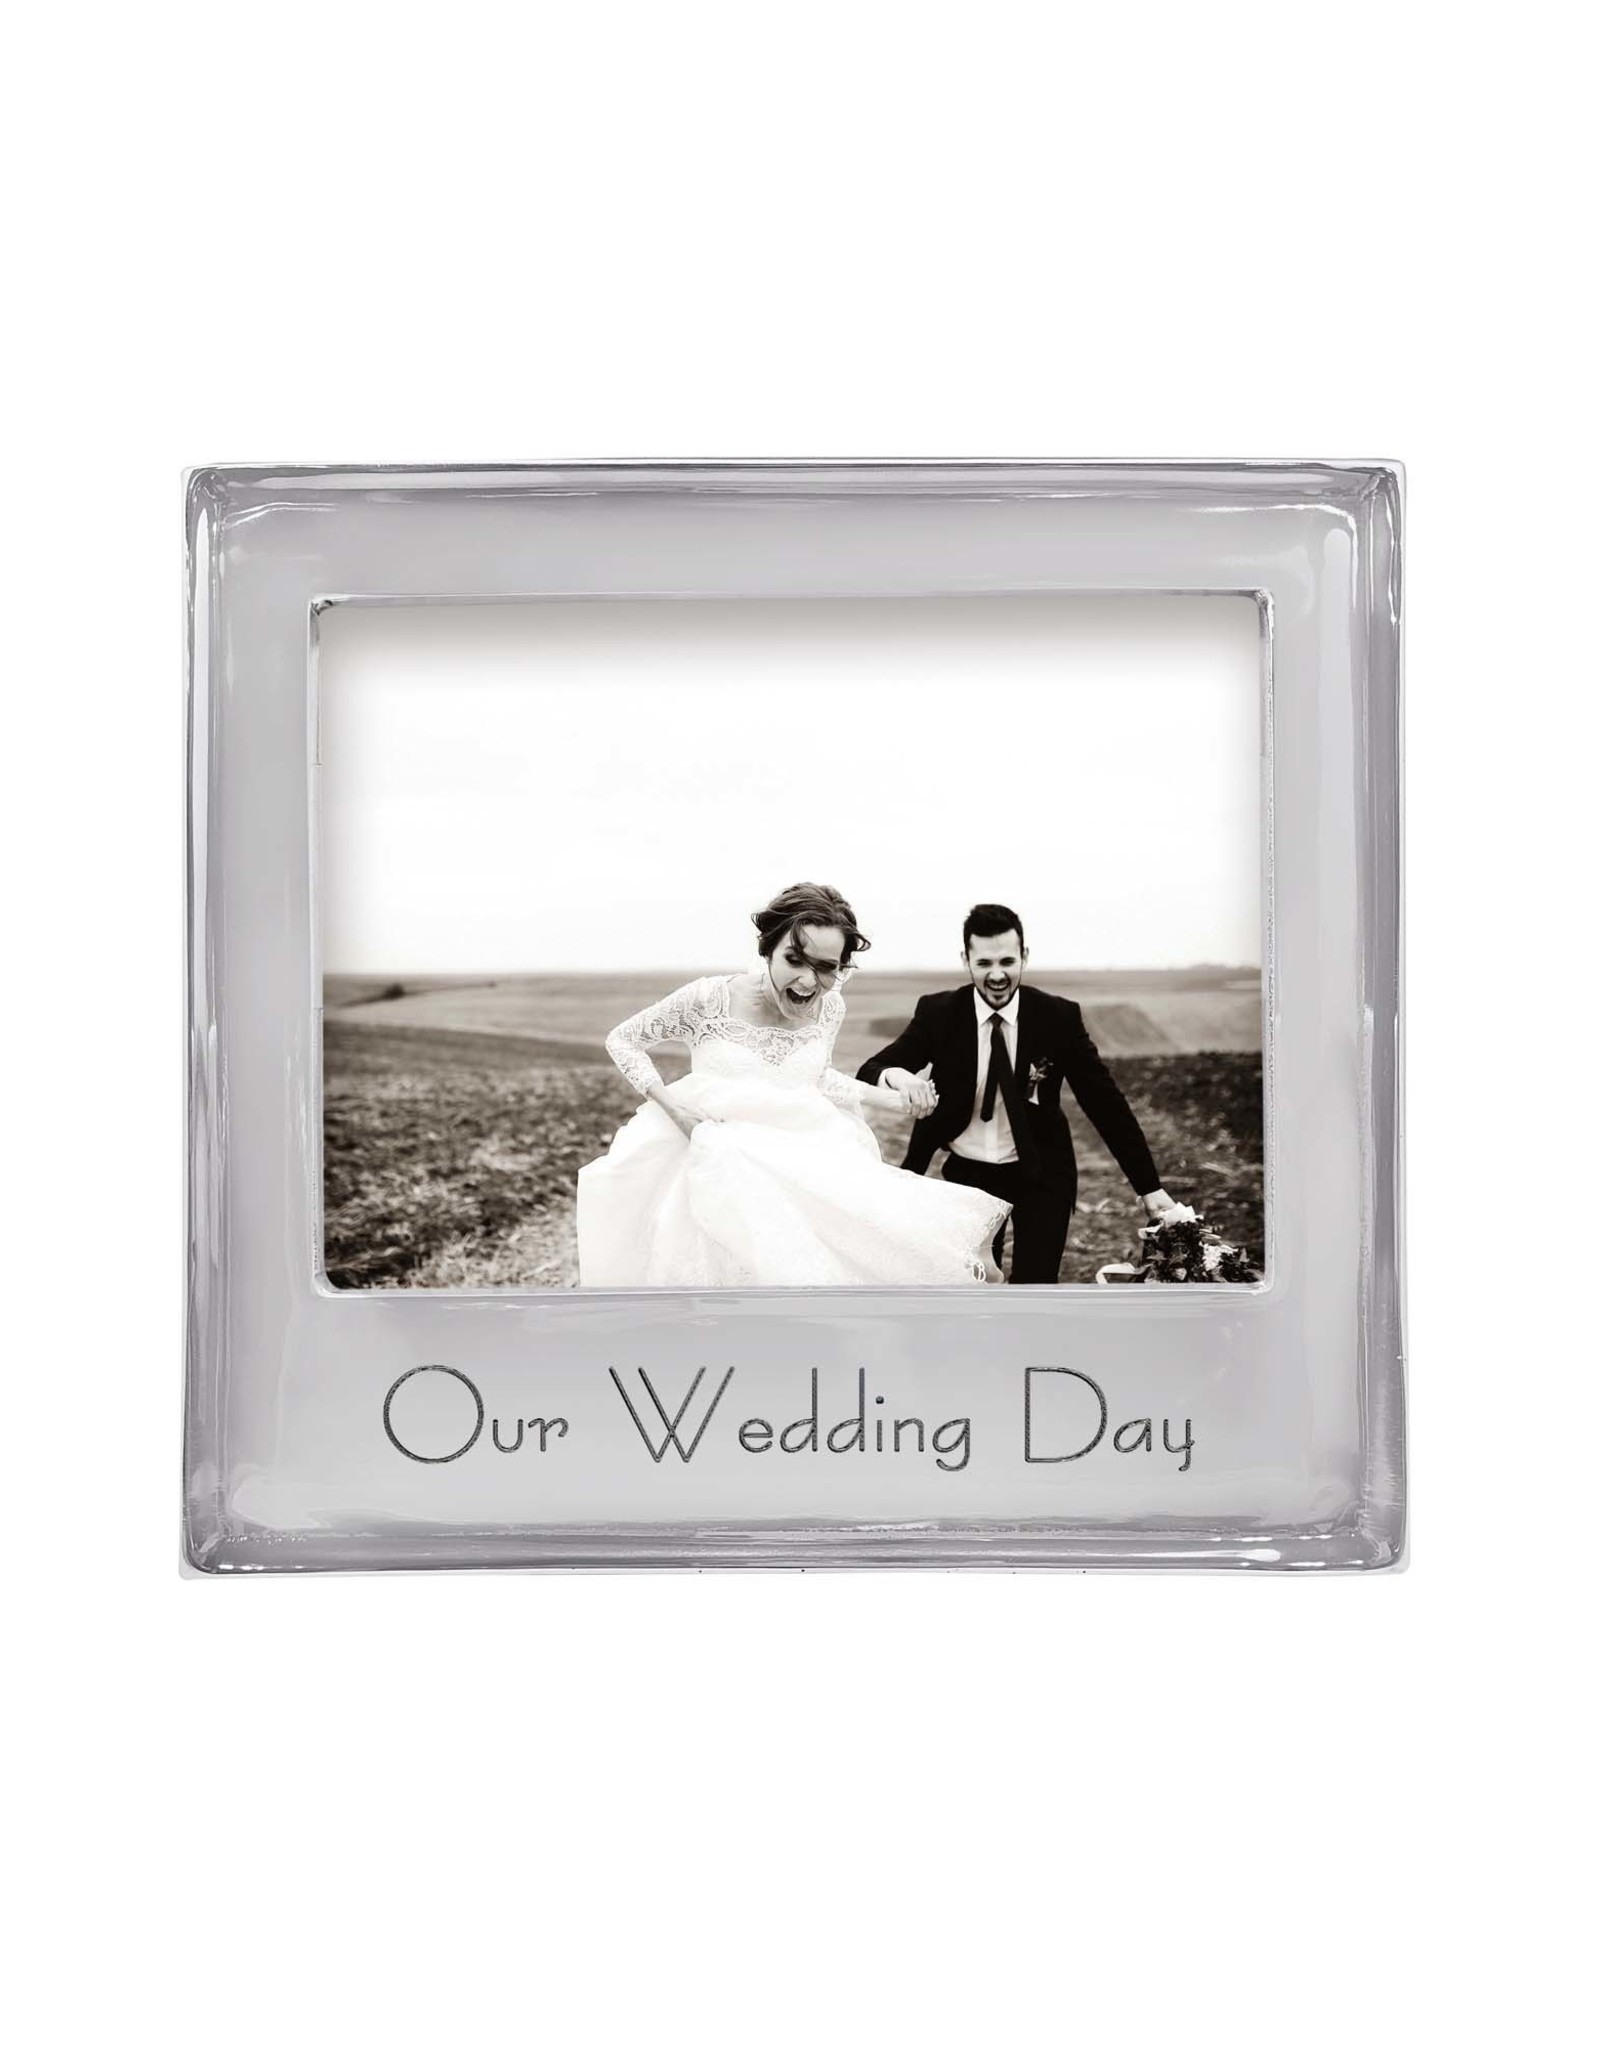 Mariposa Our Wedding Day Beaded 5x7 Frame